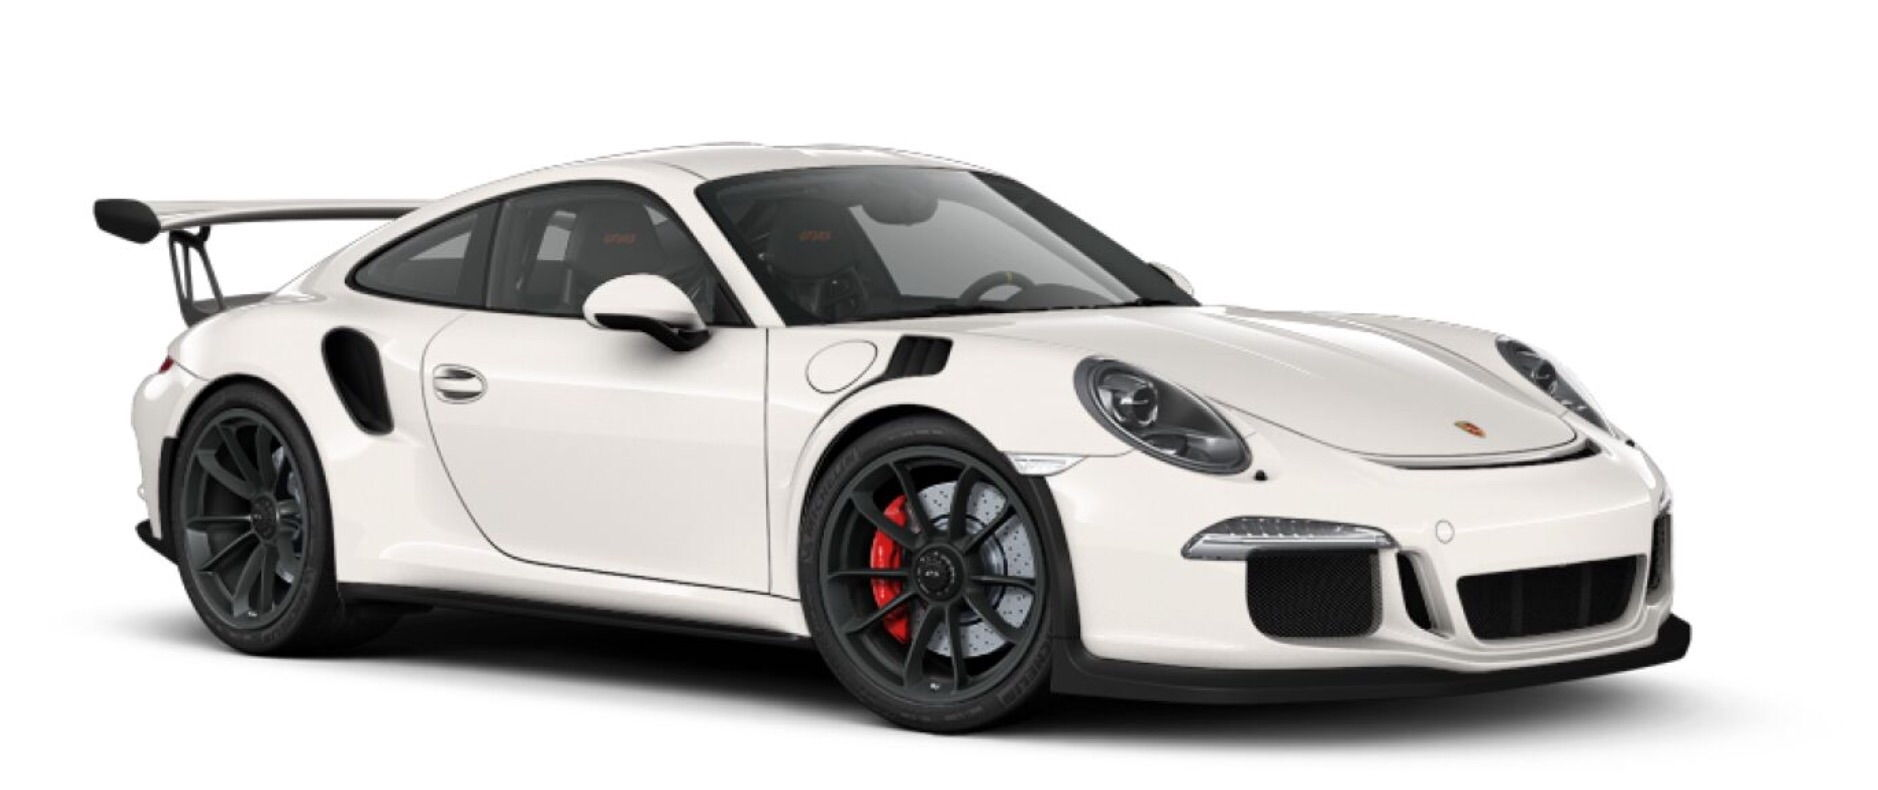 Ordering Gt3 Rs Red Instrument And Chrono Dials With Lava